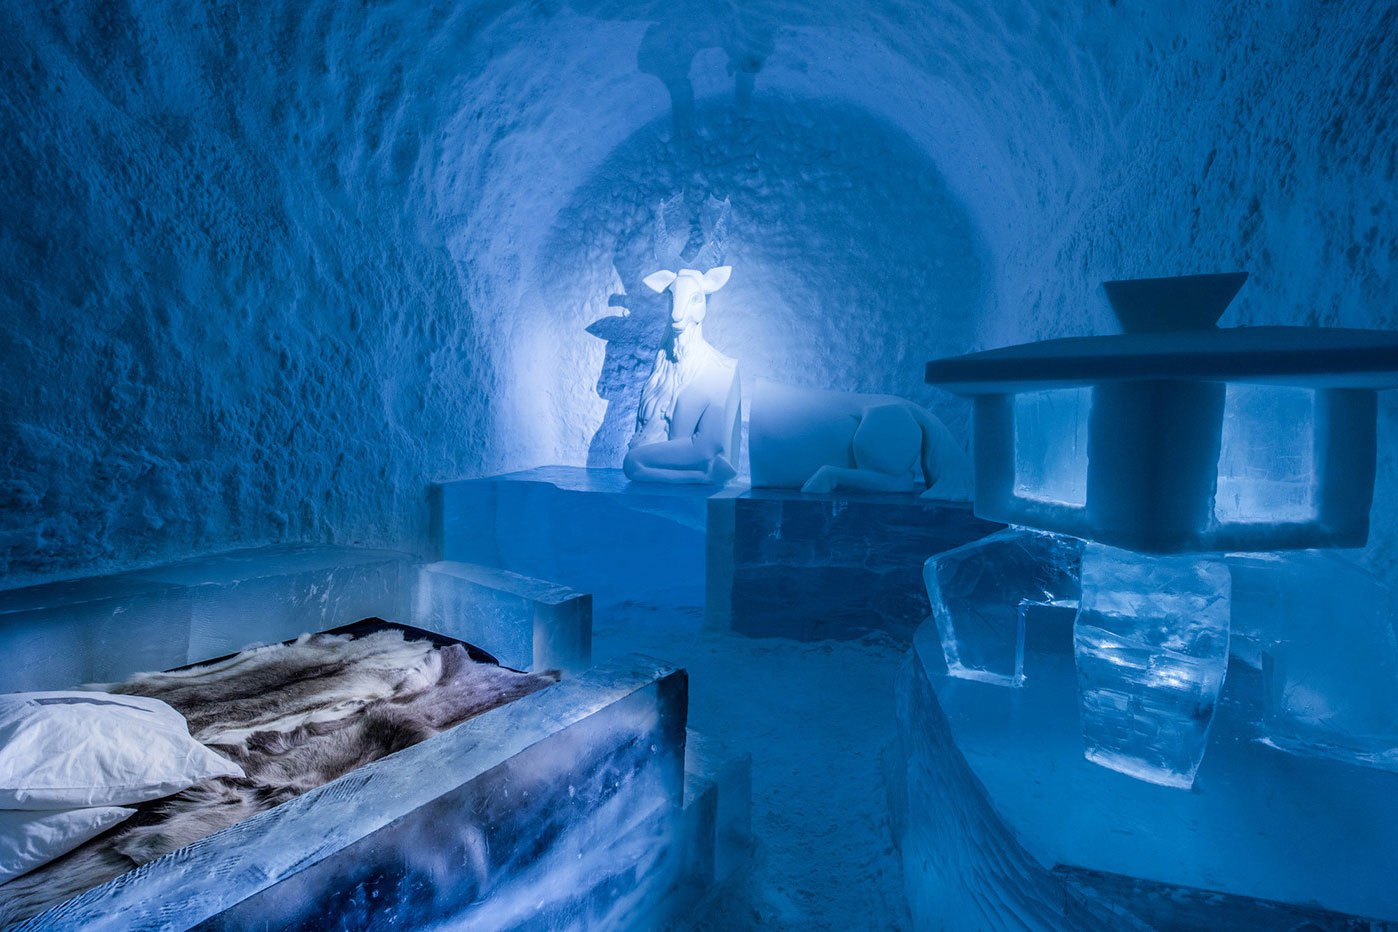 worlds-first-permanent-ice-hotel-4